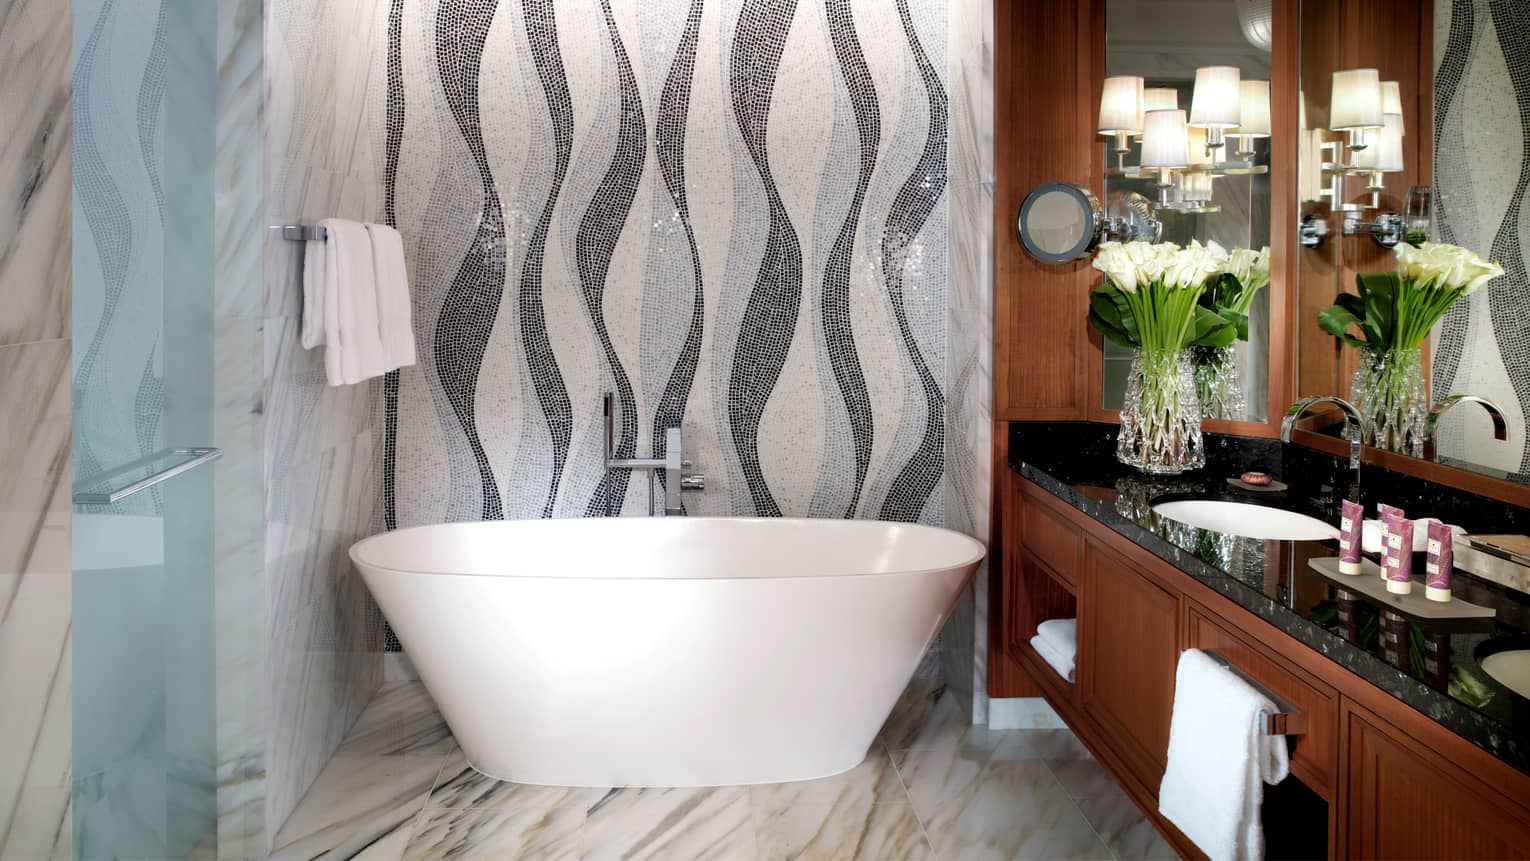 Imperial Suite marble bathroom with free-standing white soaker tub, double sink